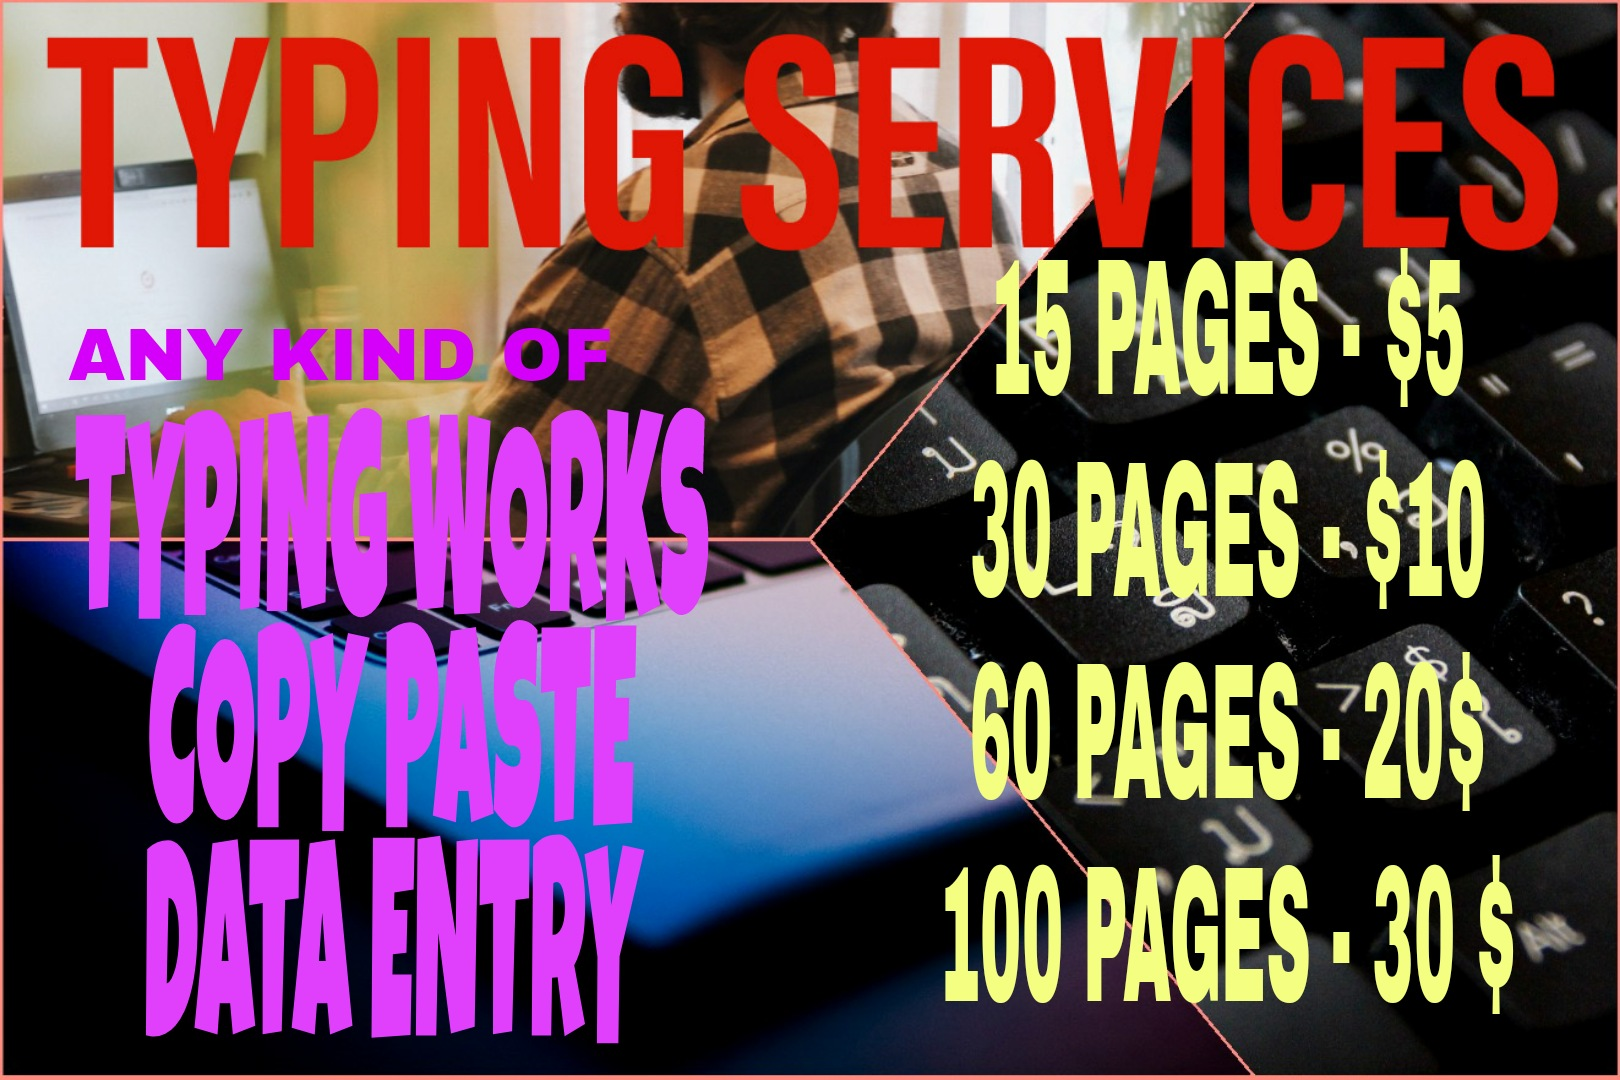 I will do all typing works,  data entry and copy paste works